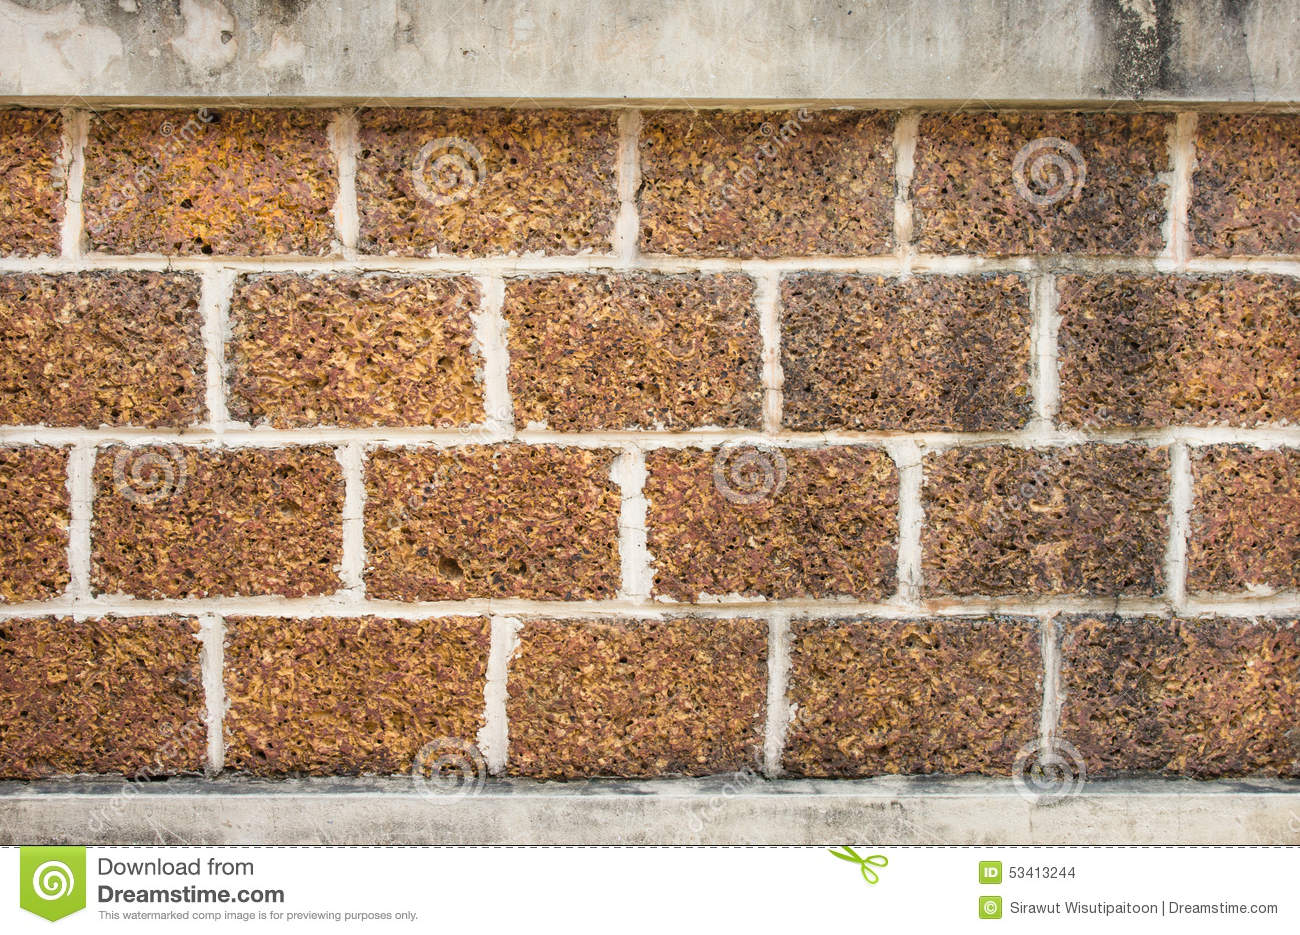 Laterite stone brick wall stock images image 35510874 - Cement Laterite Stone Surface Wall Brickwork